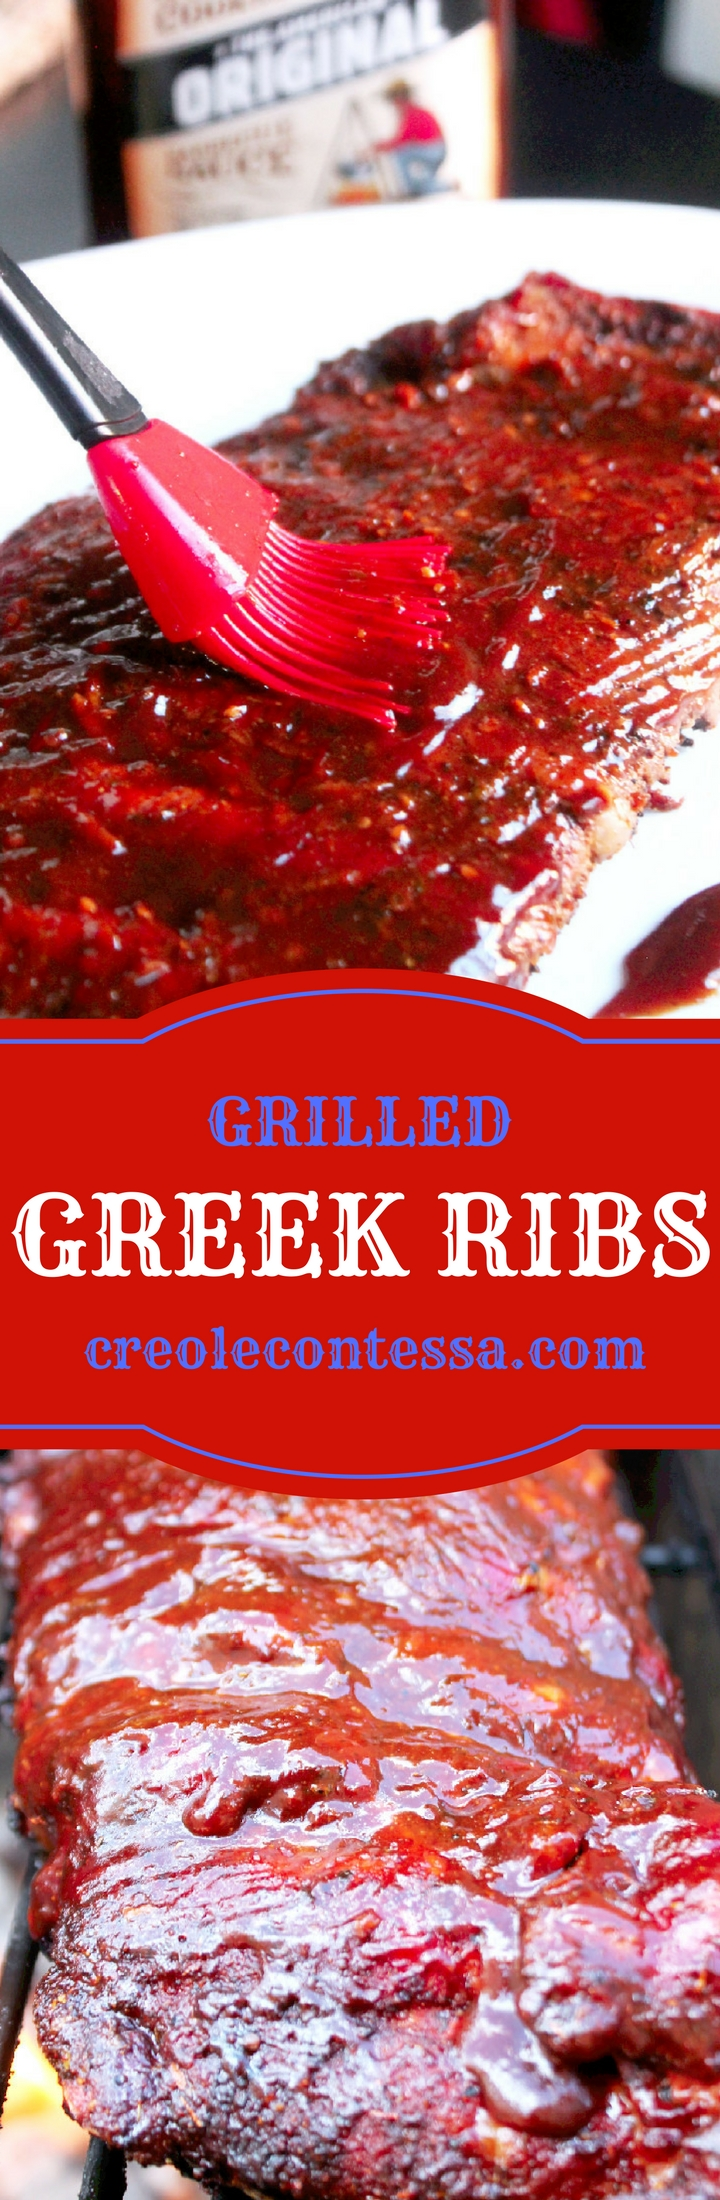 Grilled Greek Ribs-Creole Contessa